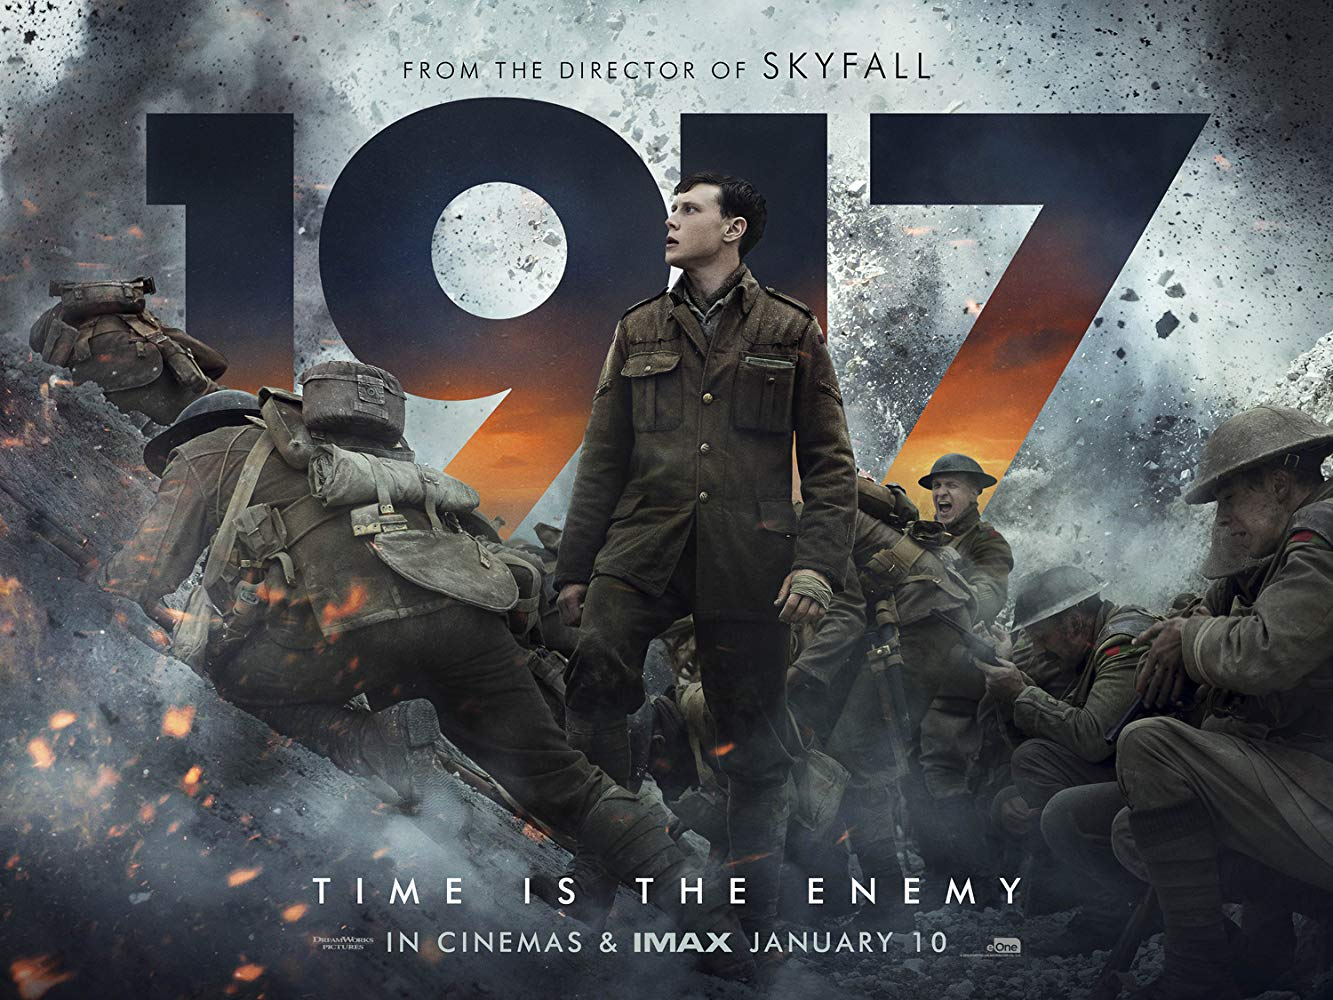 1917-Trailer-and-Info